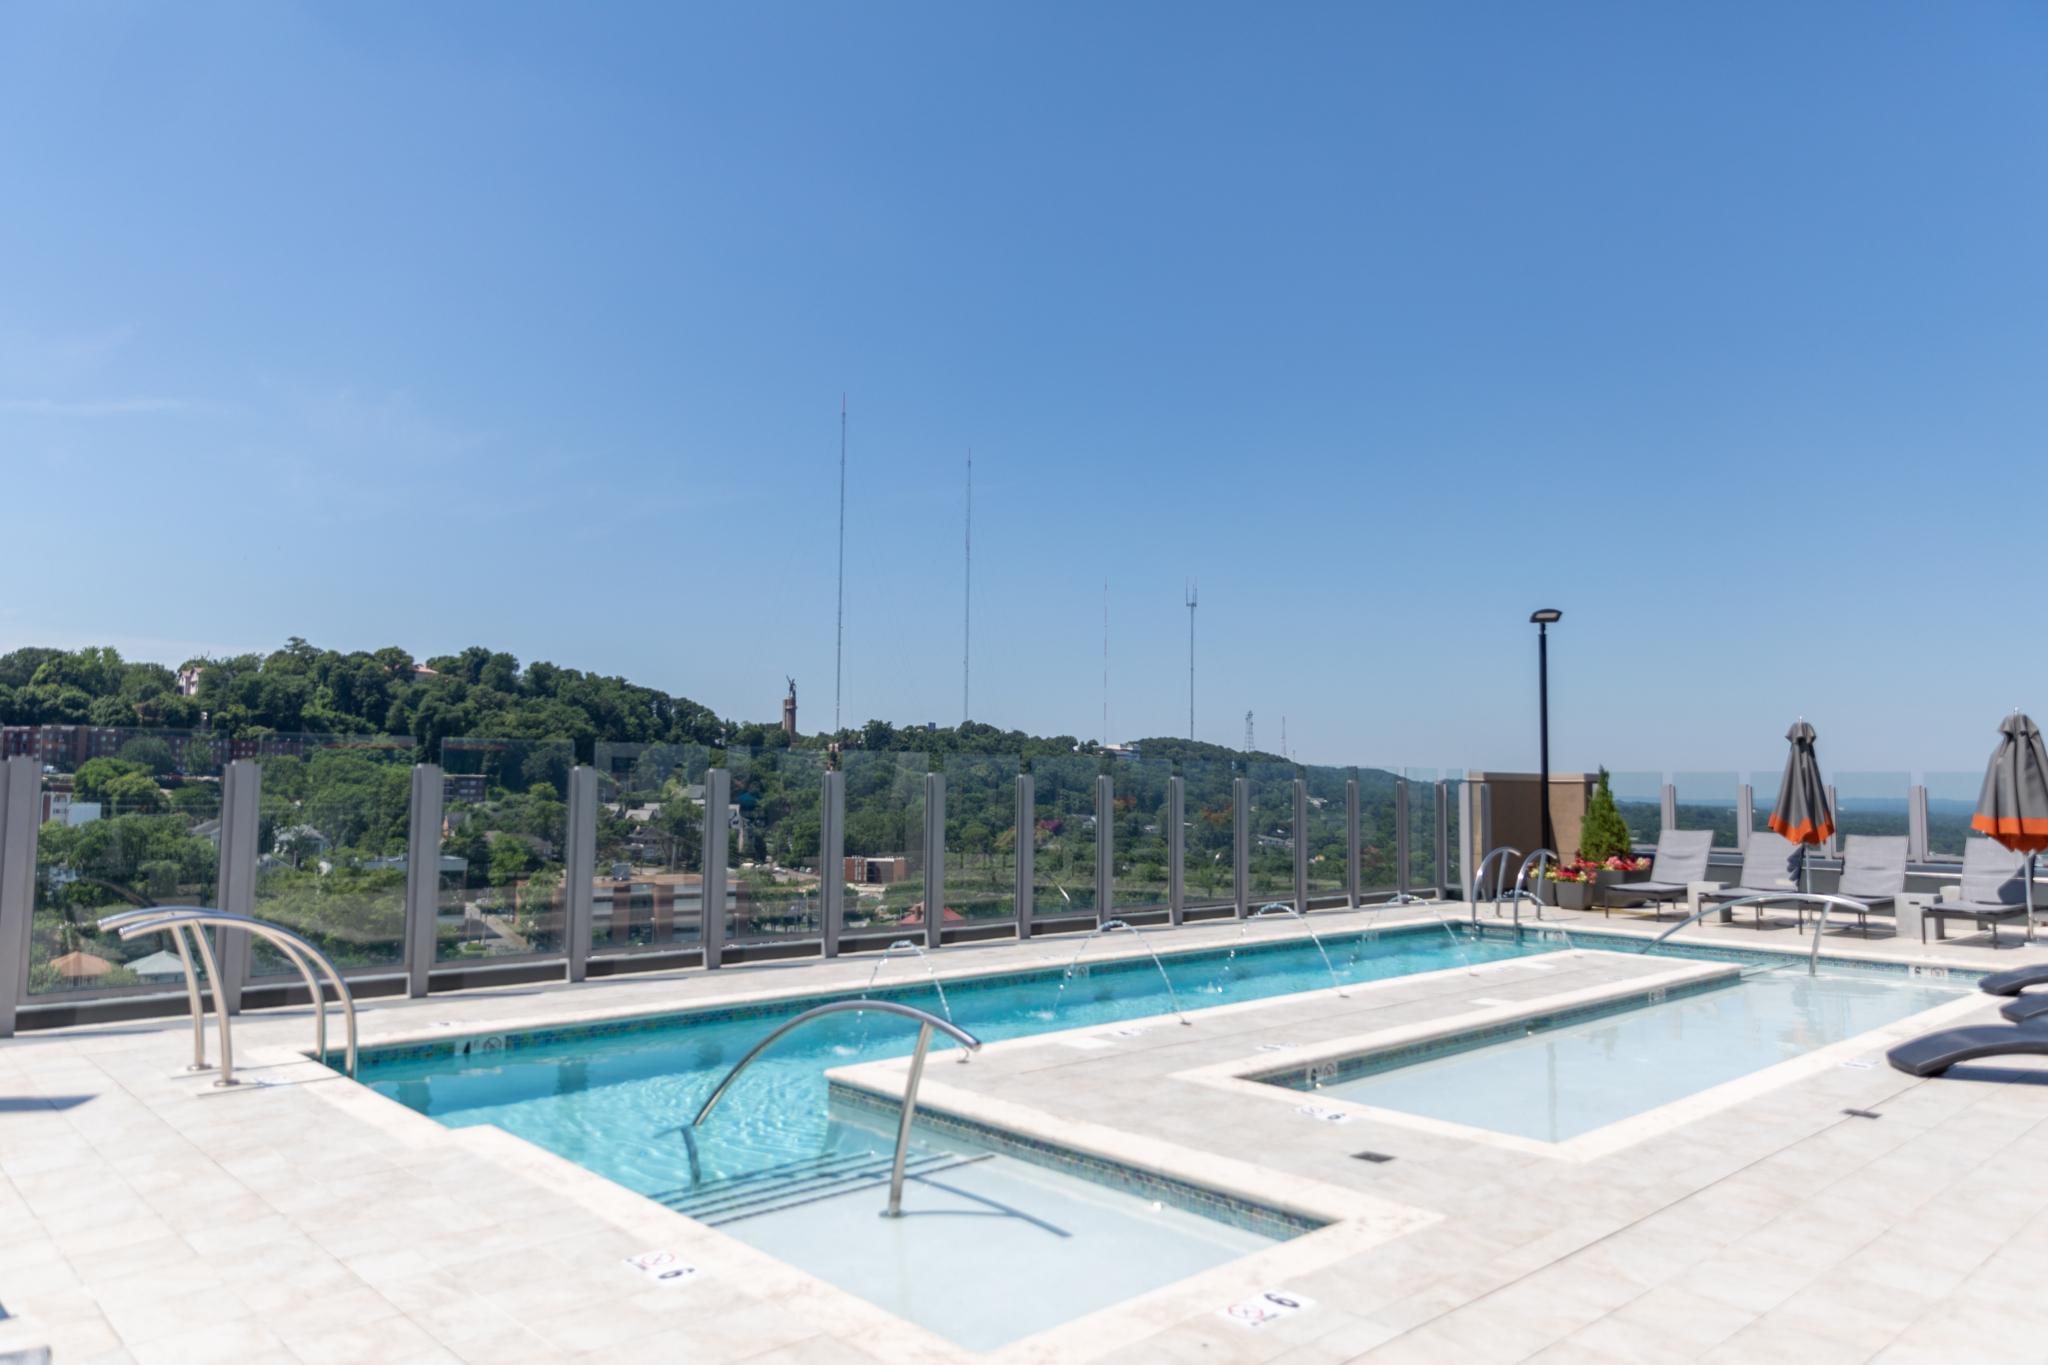 3 things we love about Cortland Vesta, including the new rooftop pool 🤩